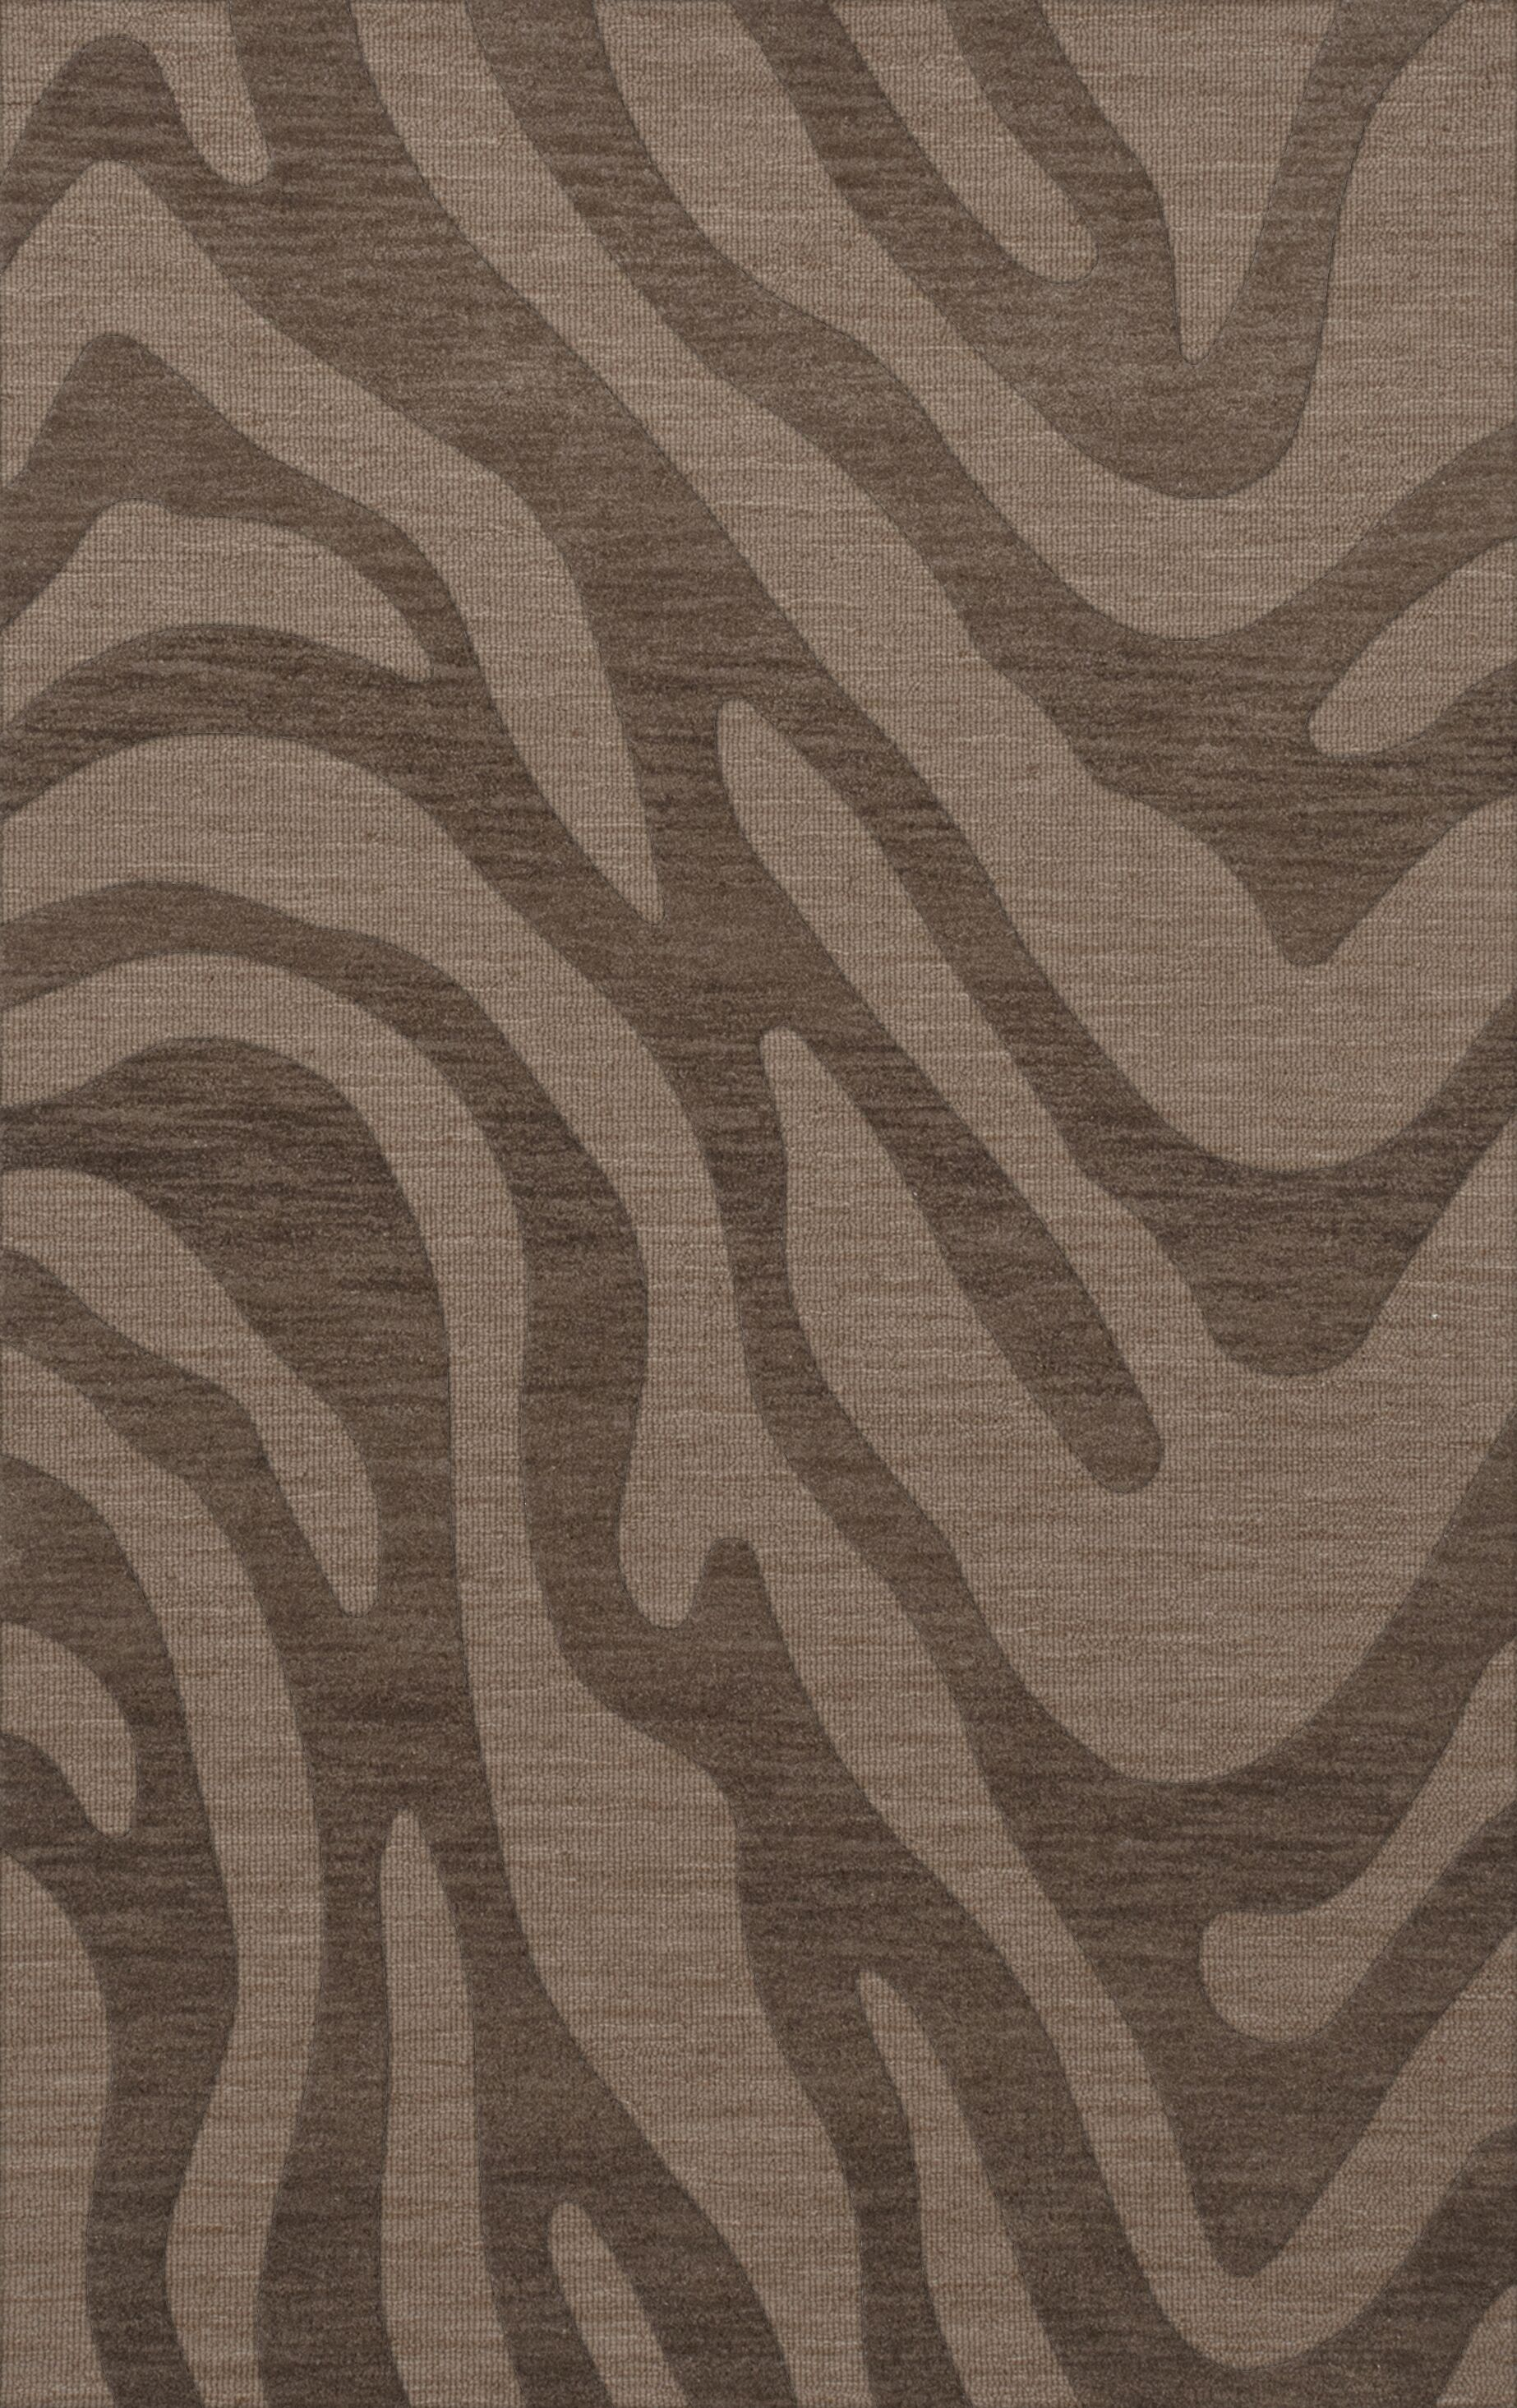 Dover Stone Area Rug Rug Size: Rectangle 3' x 5'